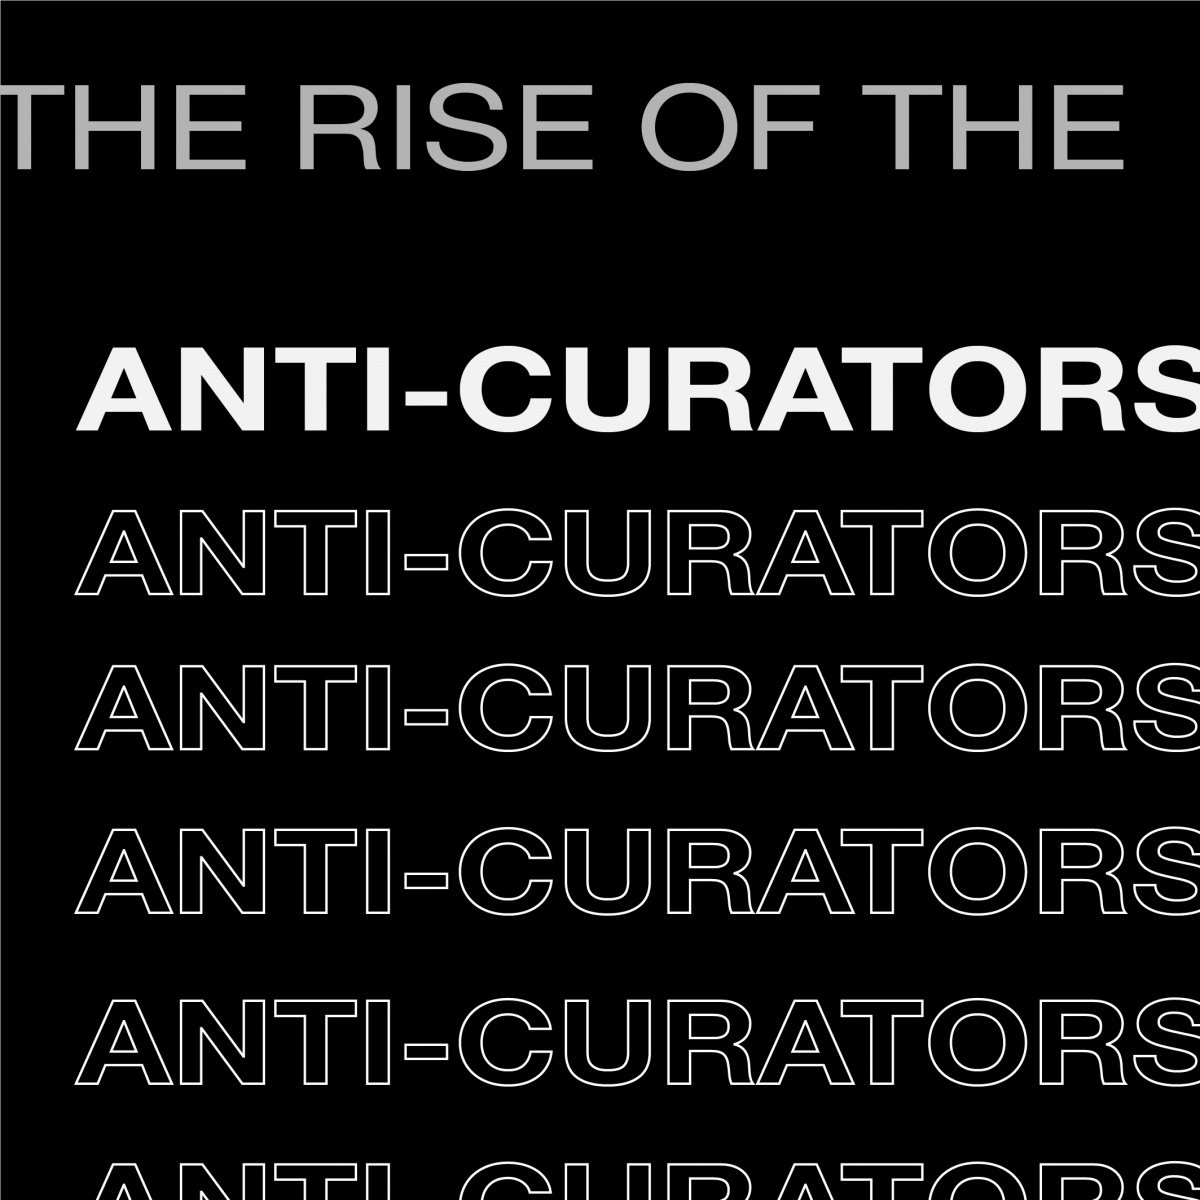 Anti-Curators-tile-2